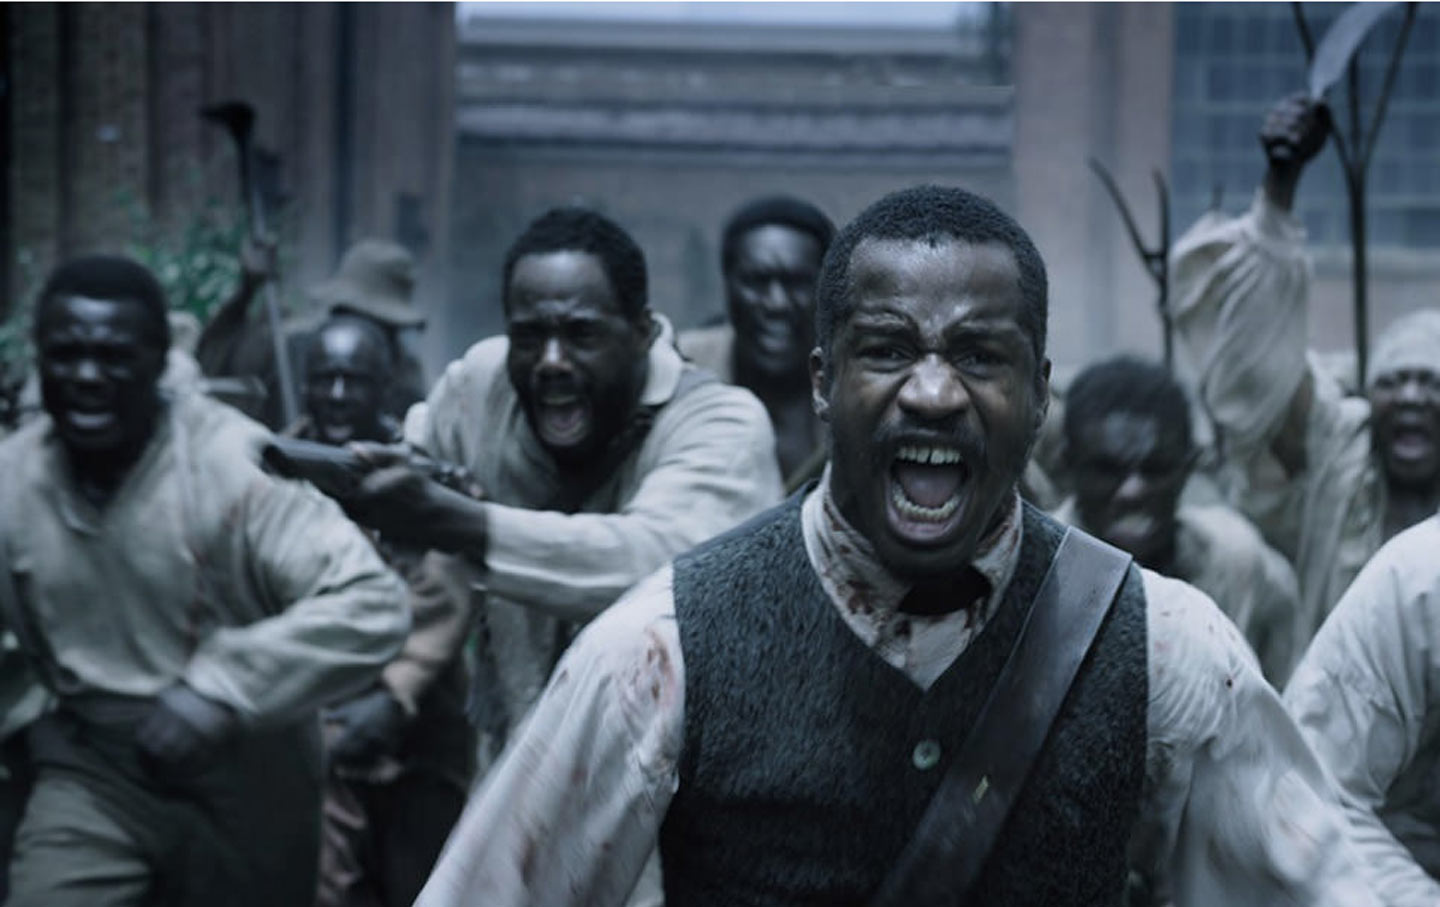 The Birth of a Nation scene